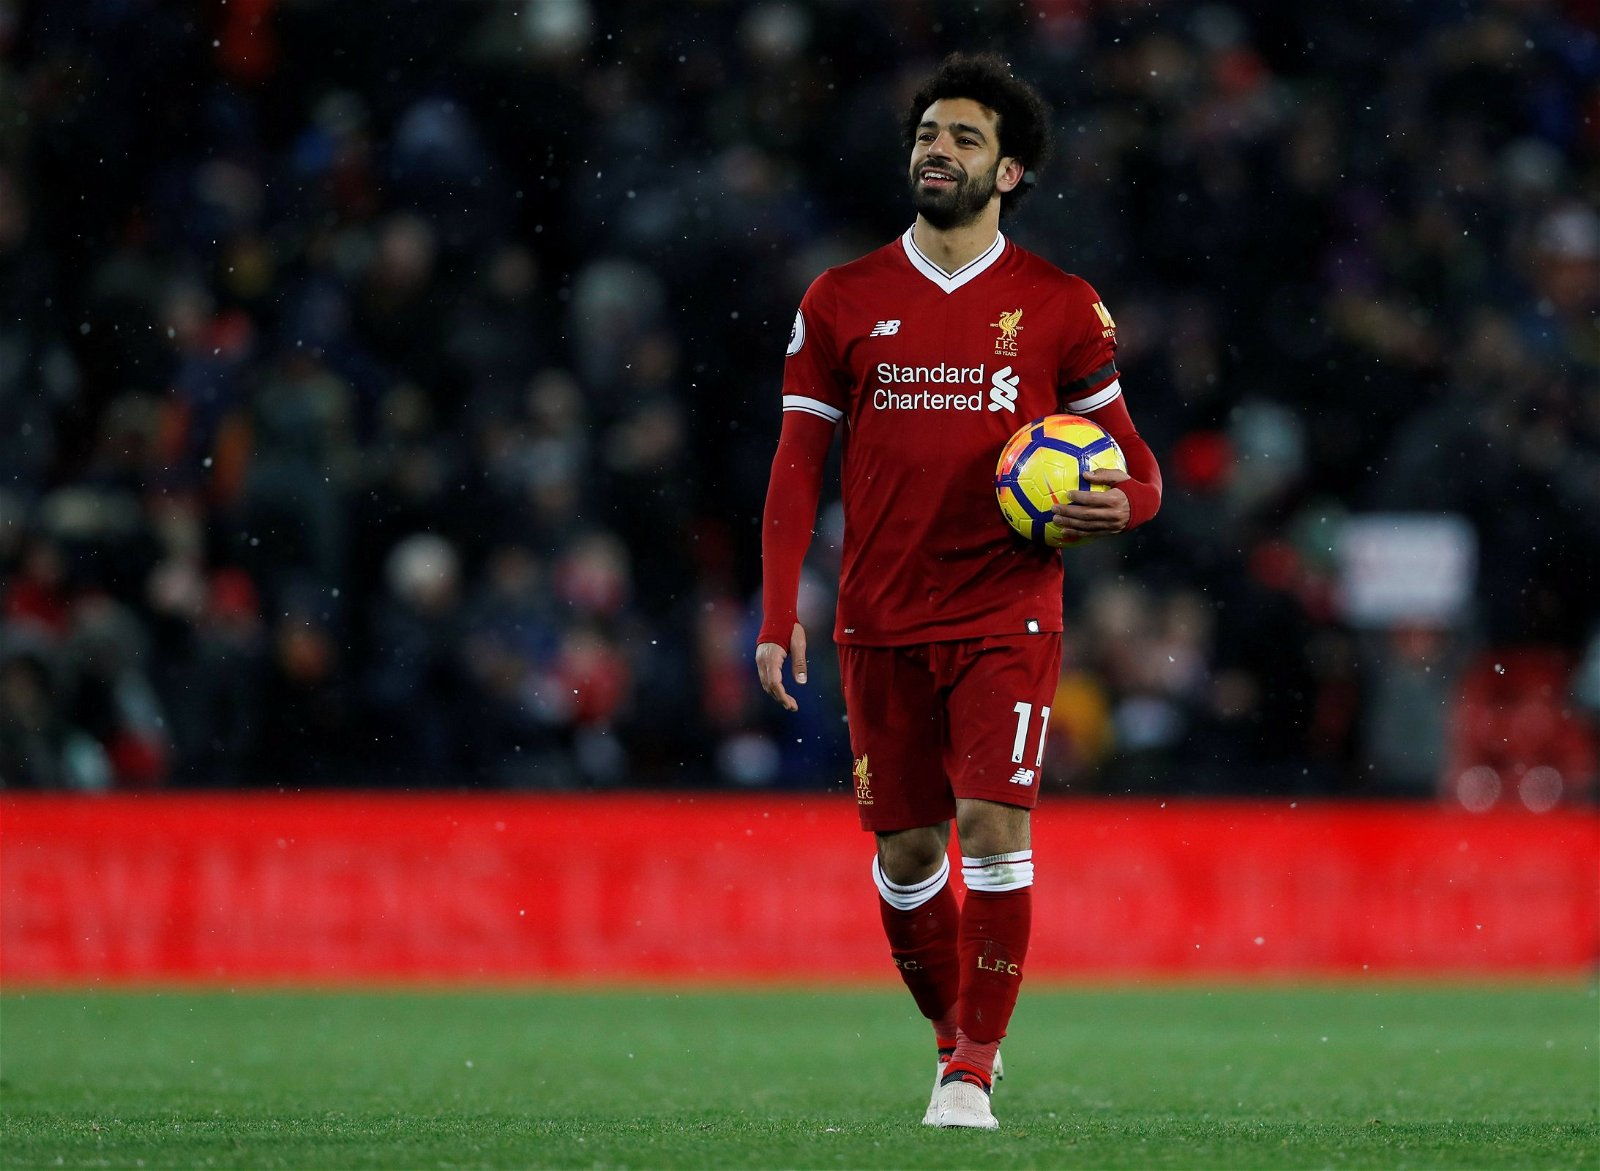 Mohamed Salah proudly holds the match ball after scoring four goals against Watford